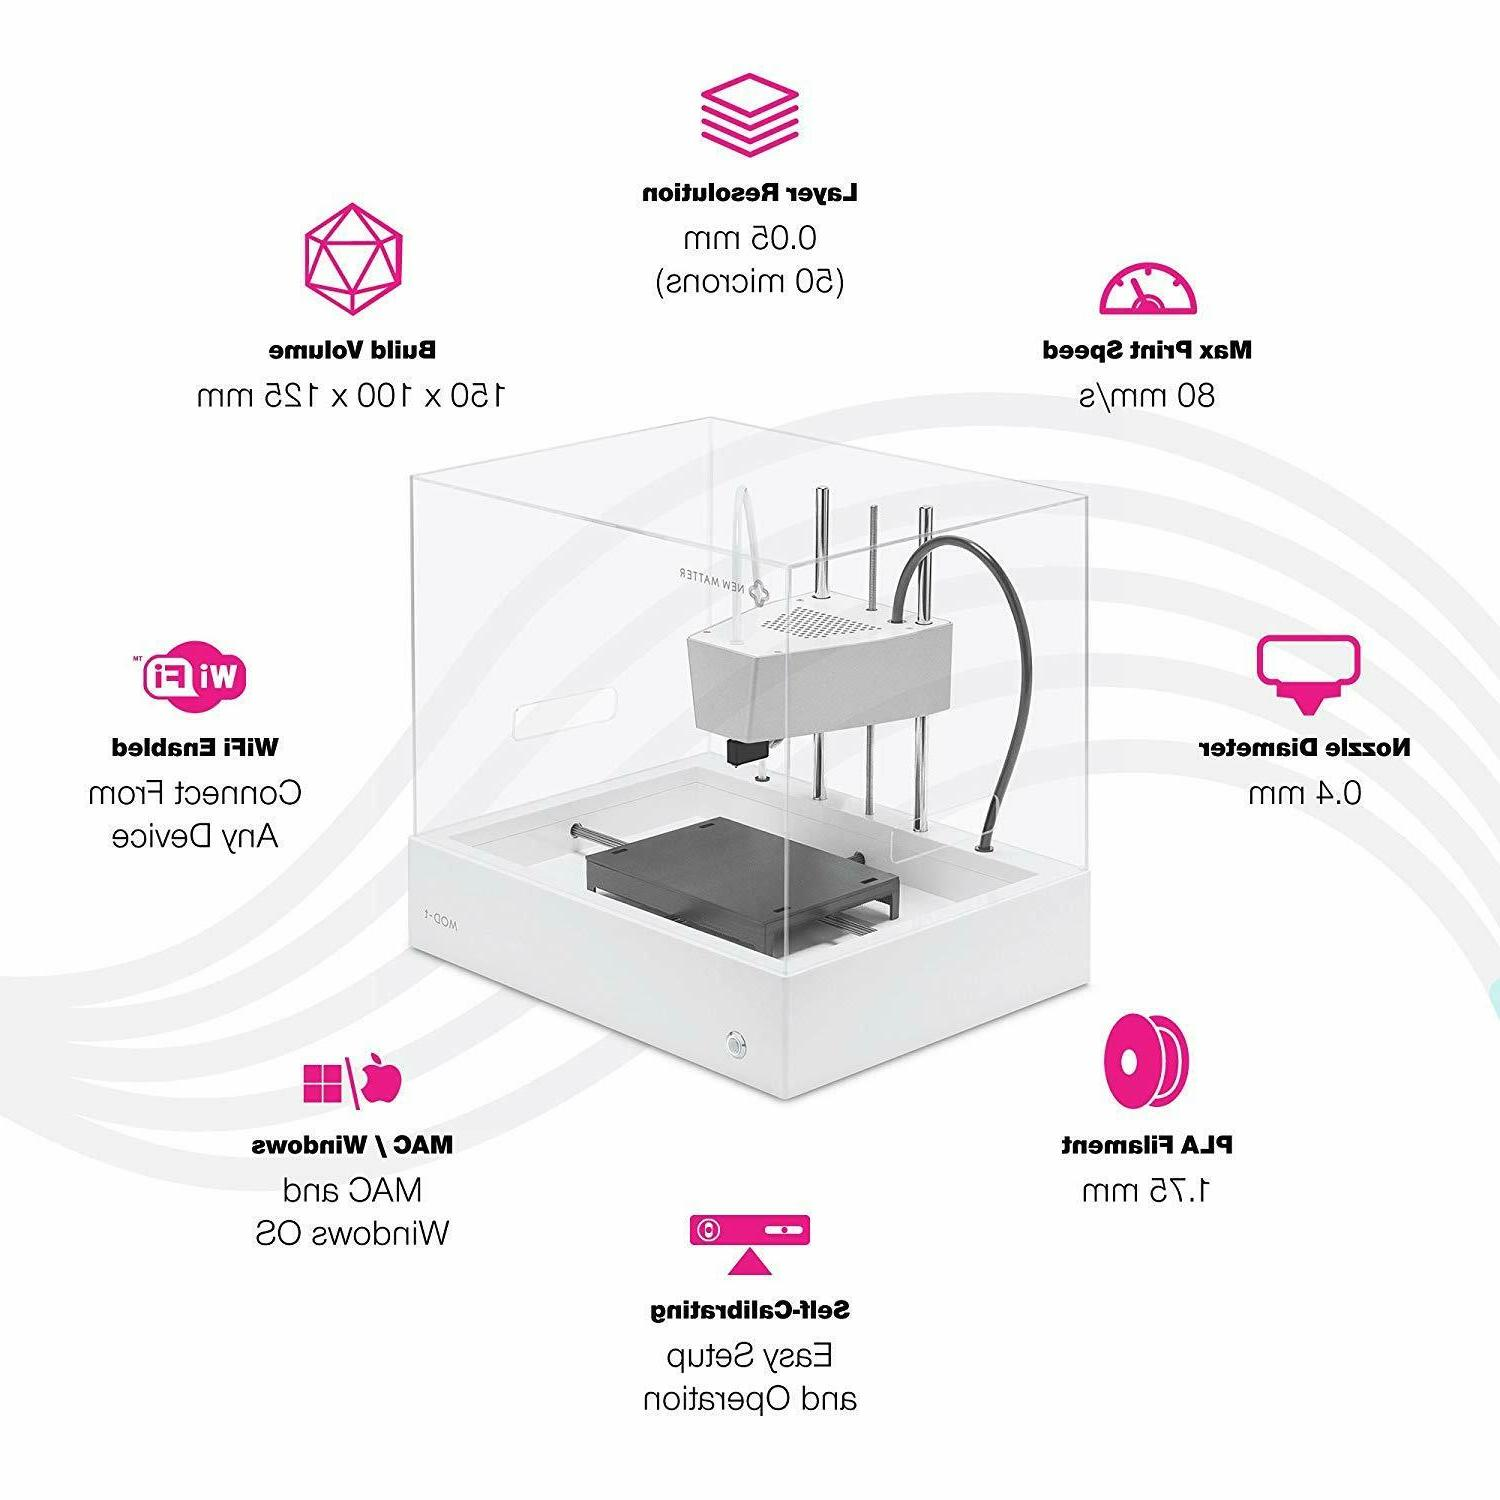 New Matter 3D Printer White Fused Filament Fabrication